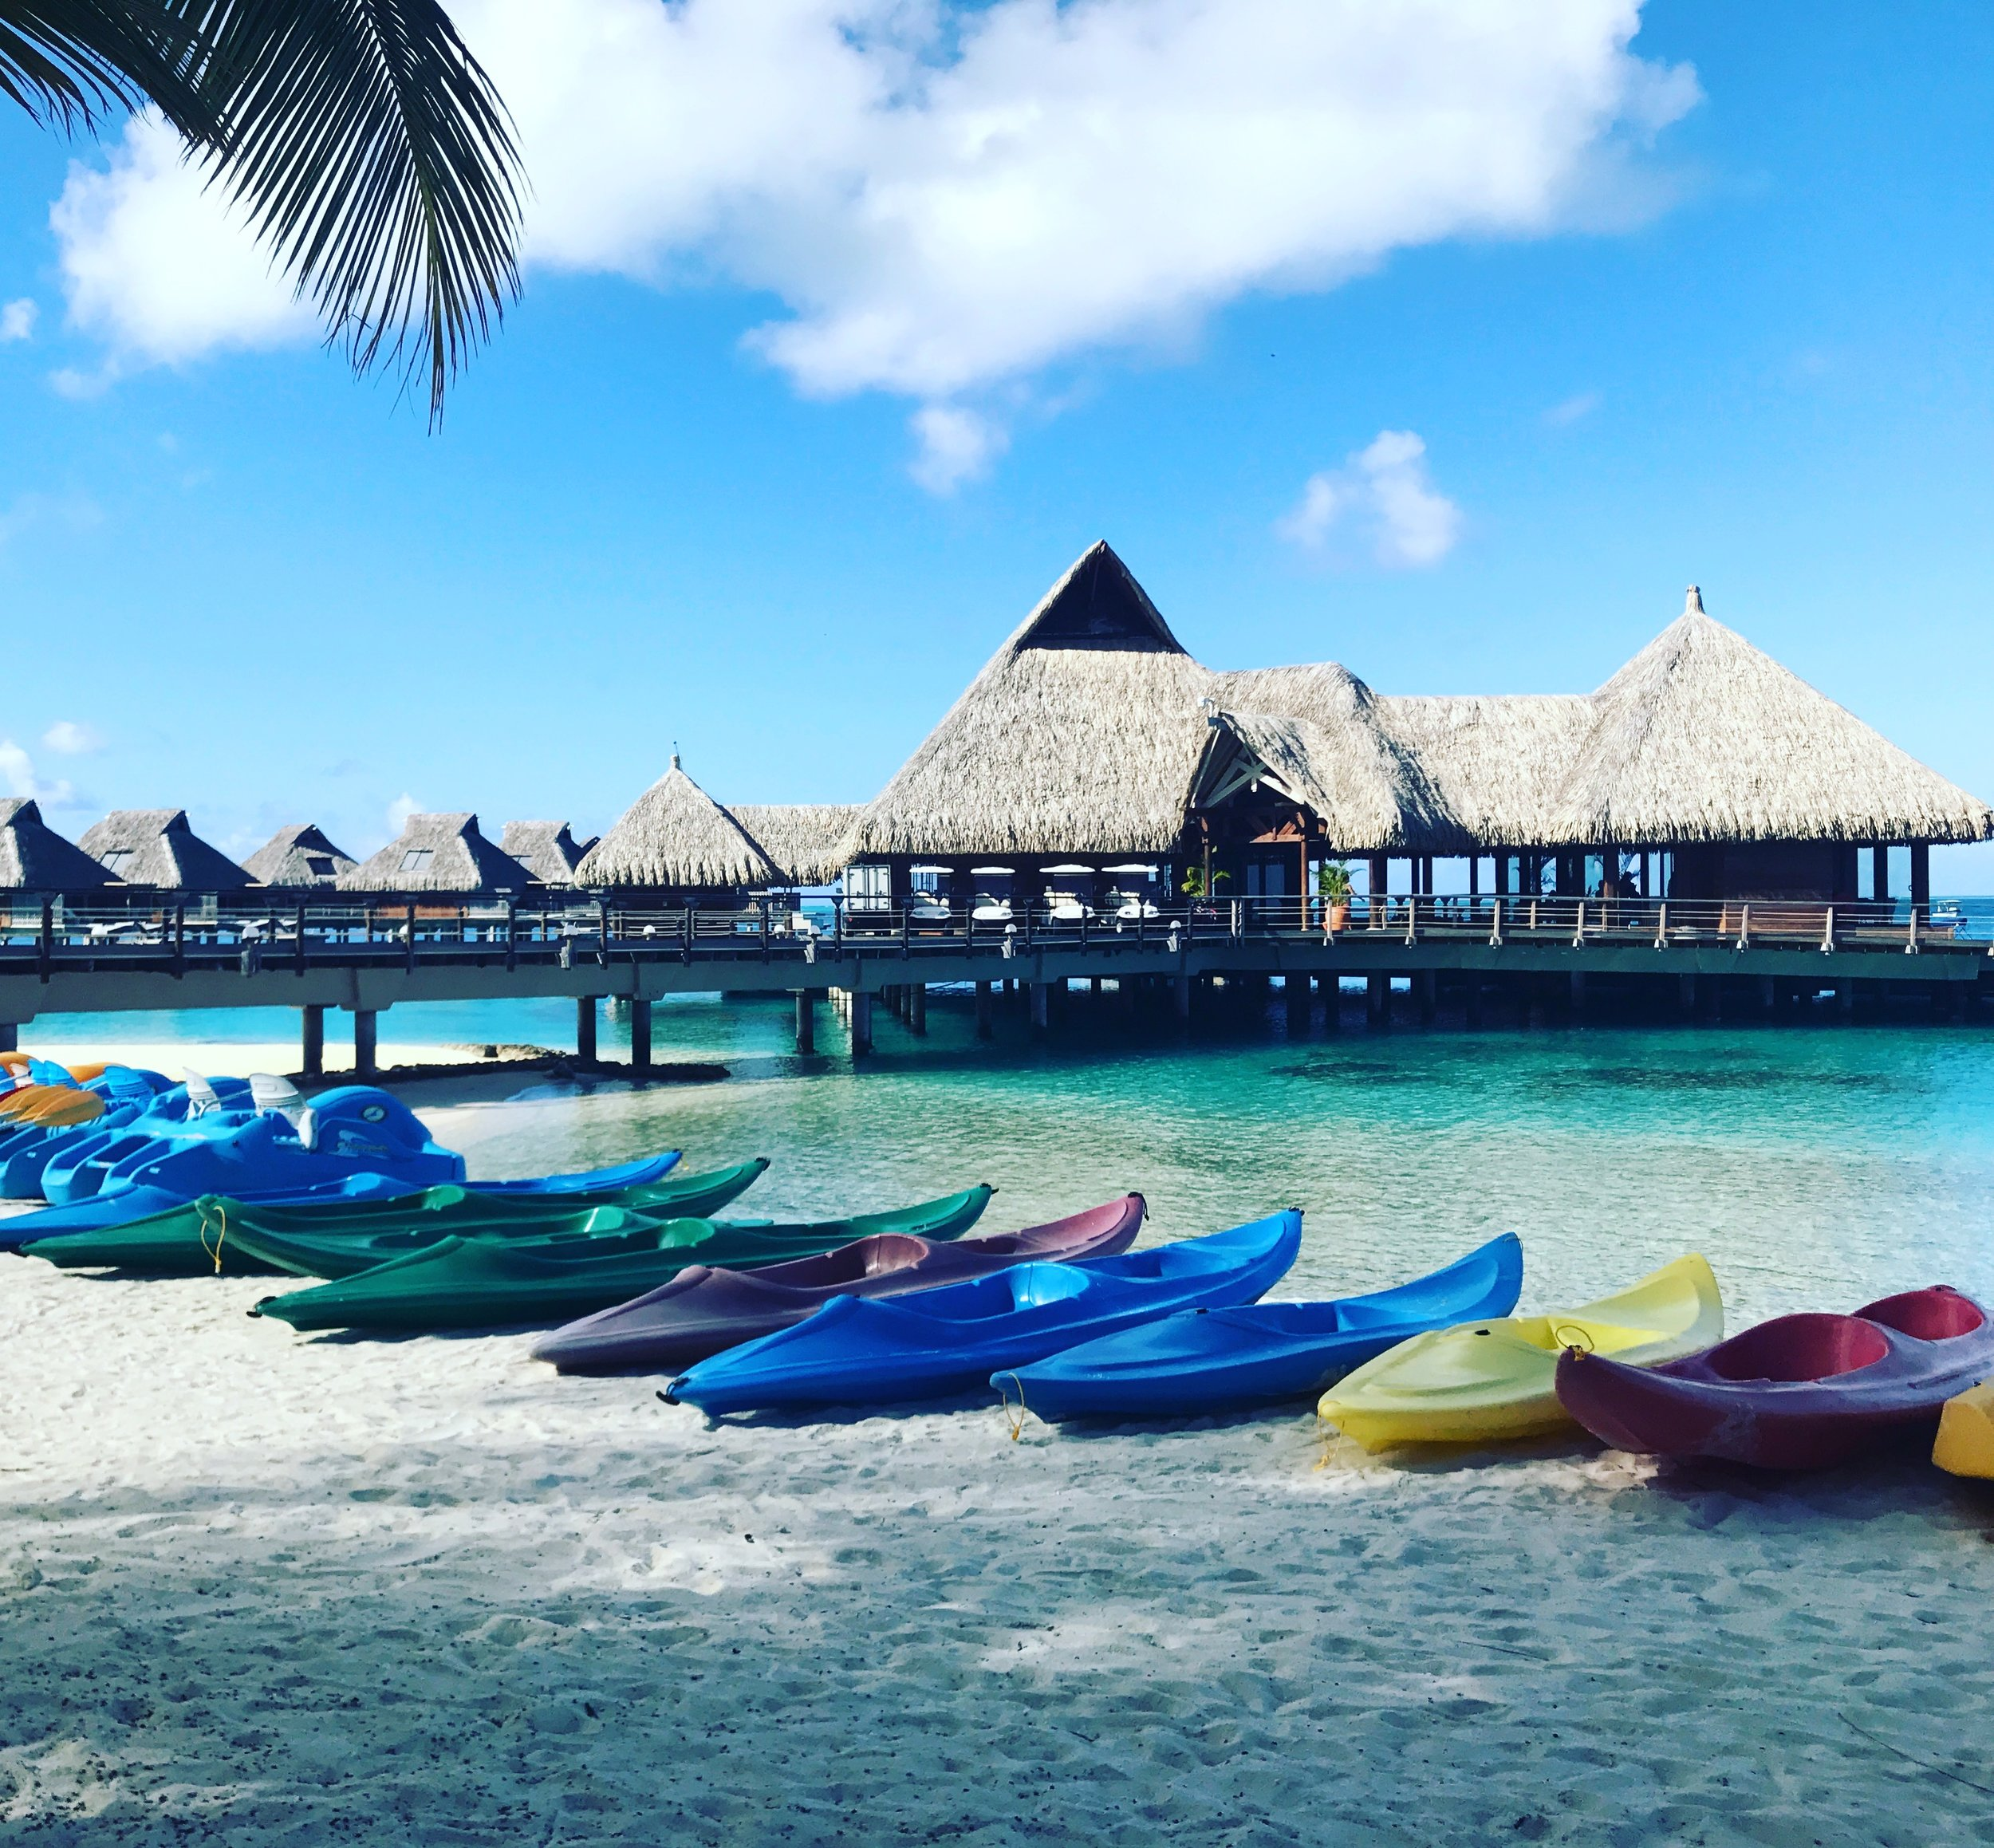 The bevy of color canoes you can choose from to paddle out and explore with